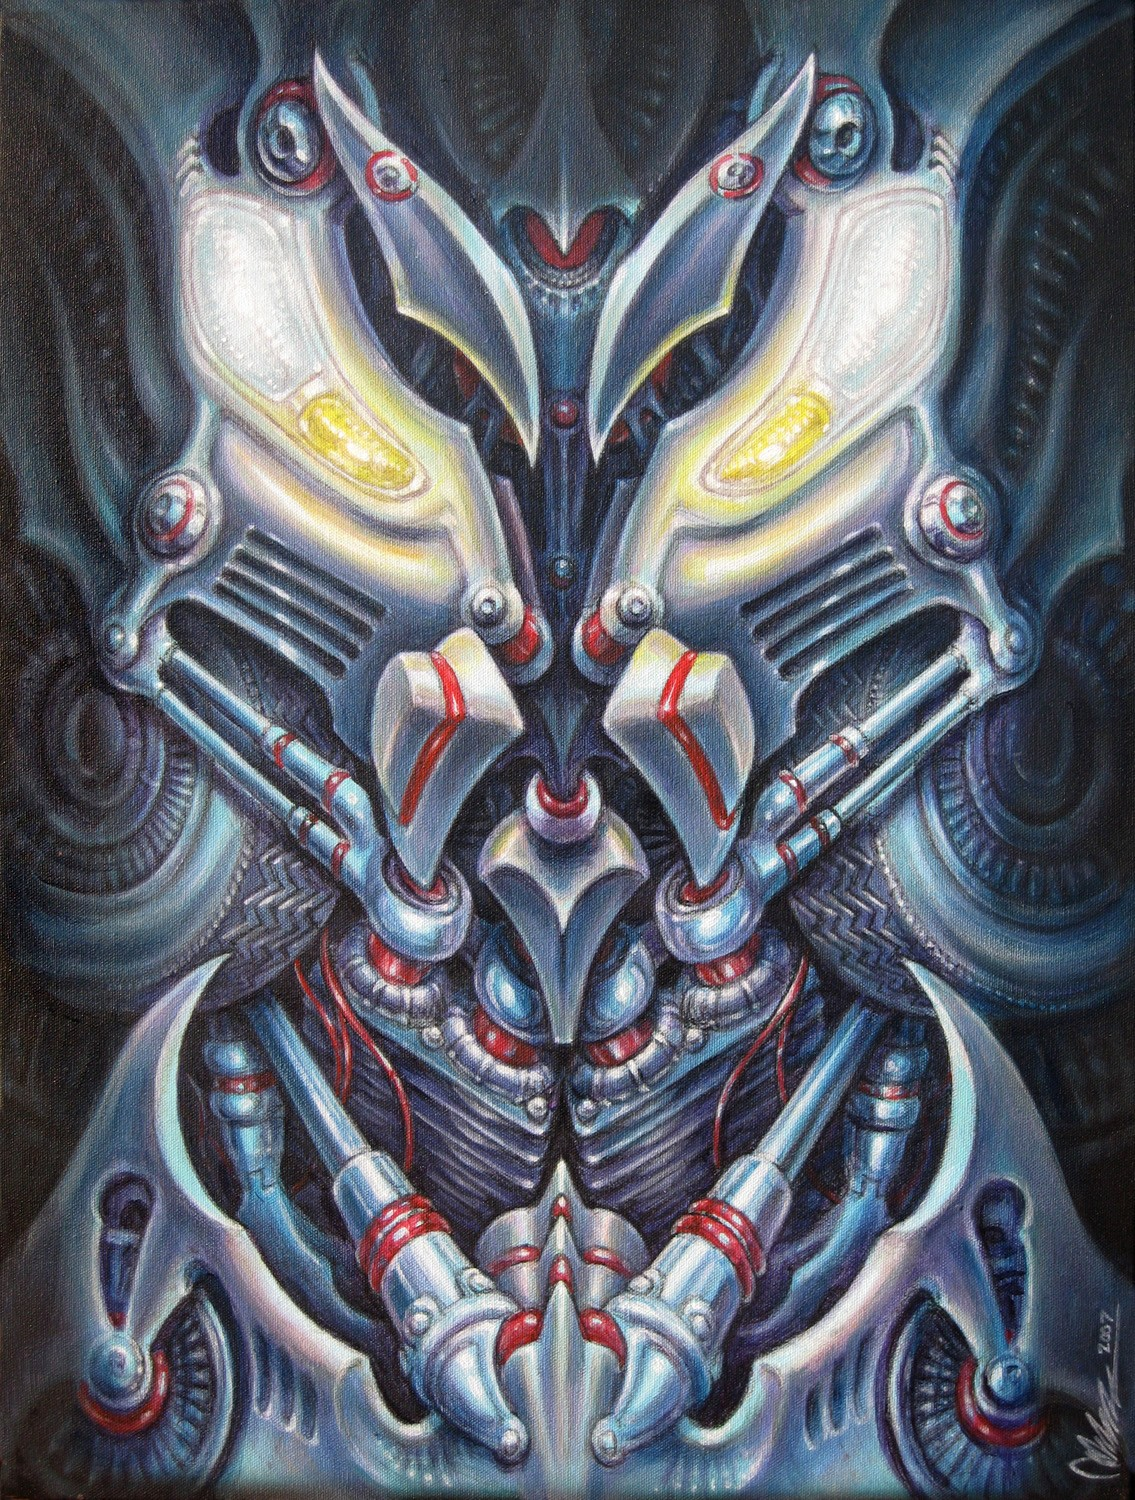 Guyomech - Member Art Galleries - Welcome to the DMT-Nexus